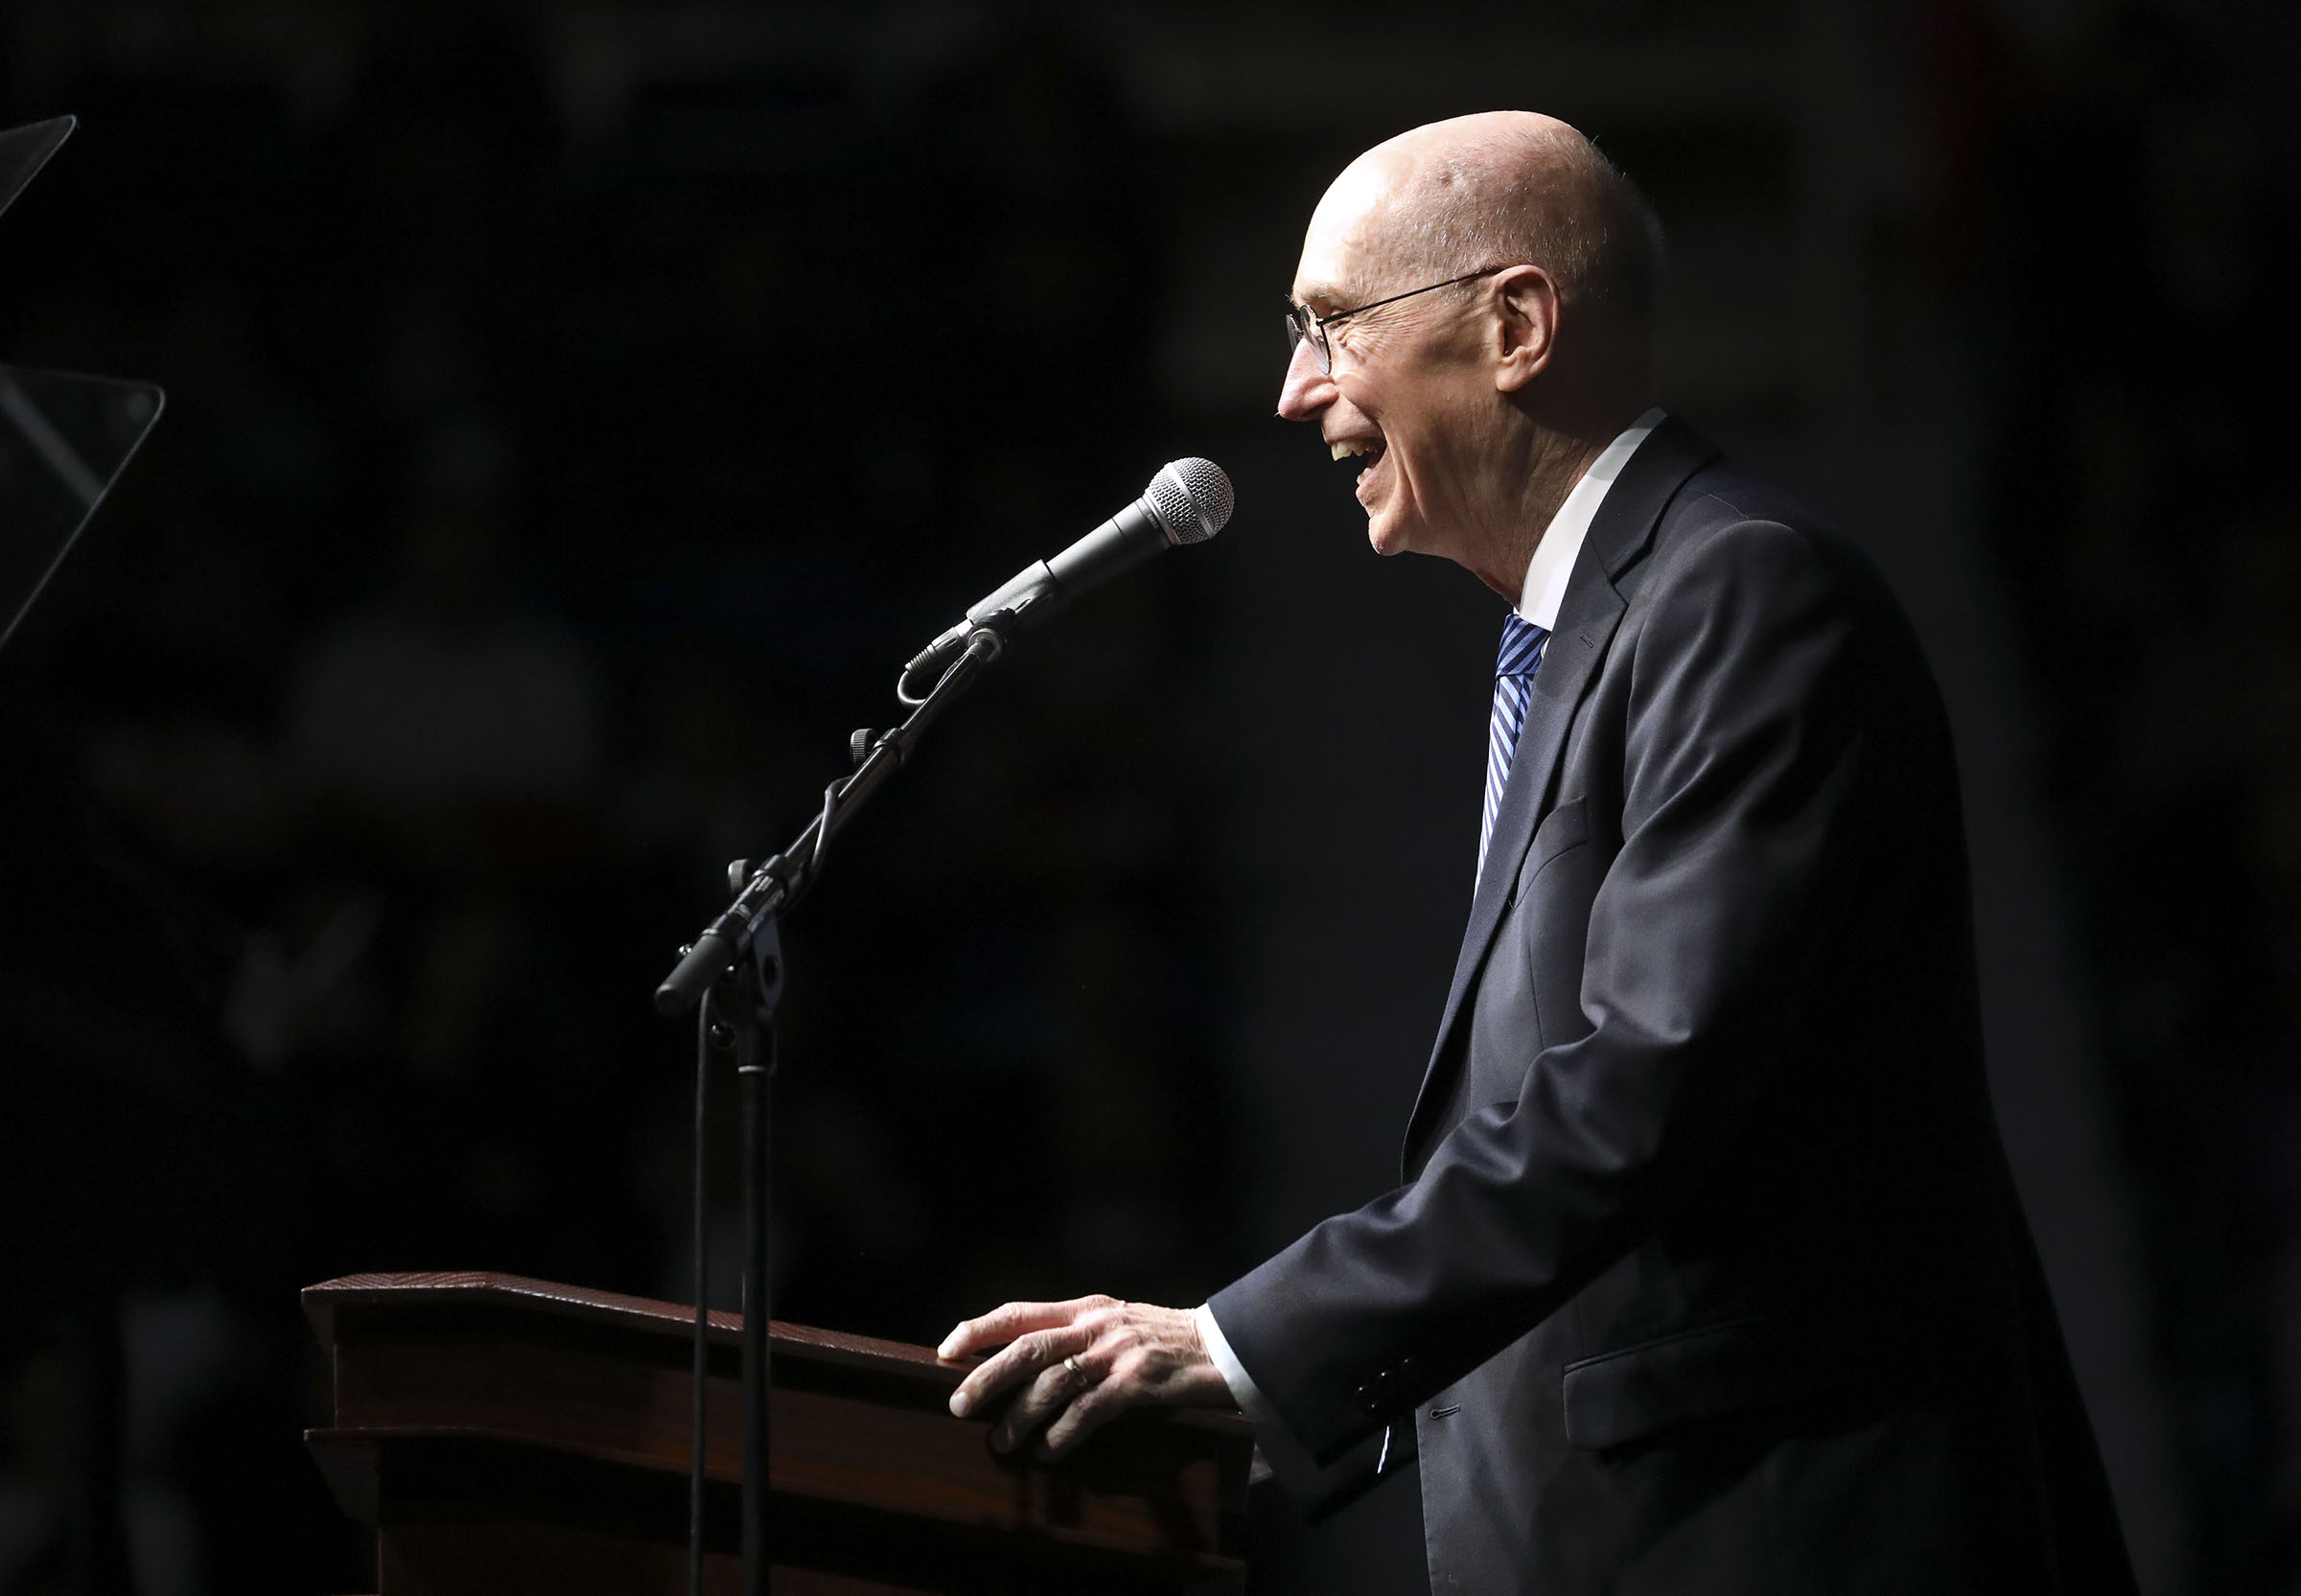 President Henry B. Eyring, second counselor in the First Presidency of The Church of Jesus Christ of Latter-day Saints, speaks at the Langley Events Center in Langley, British Columbia, on Sunday, Sept. 16, 2018.